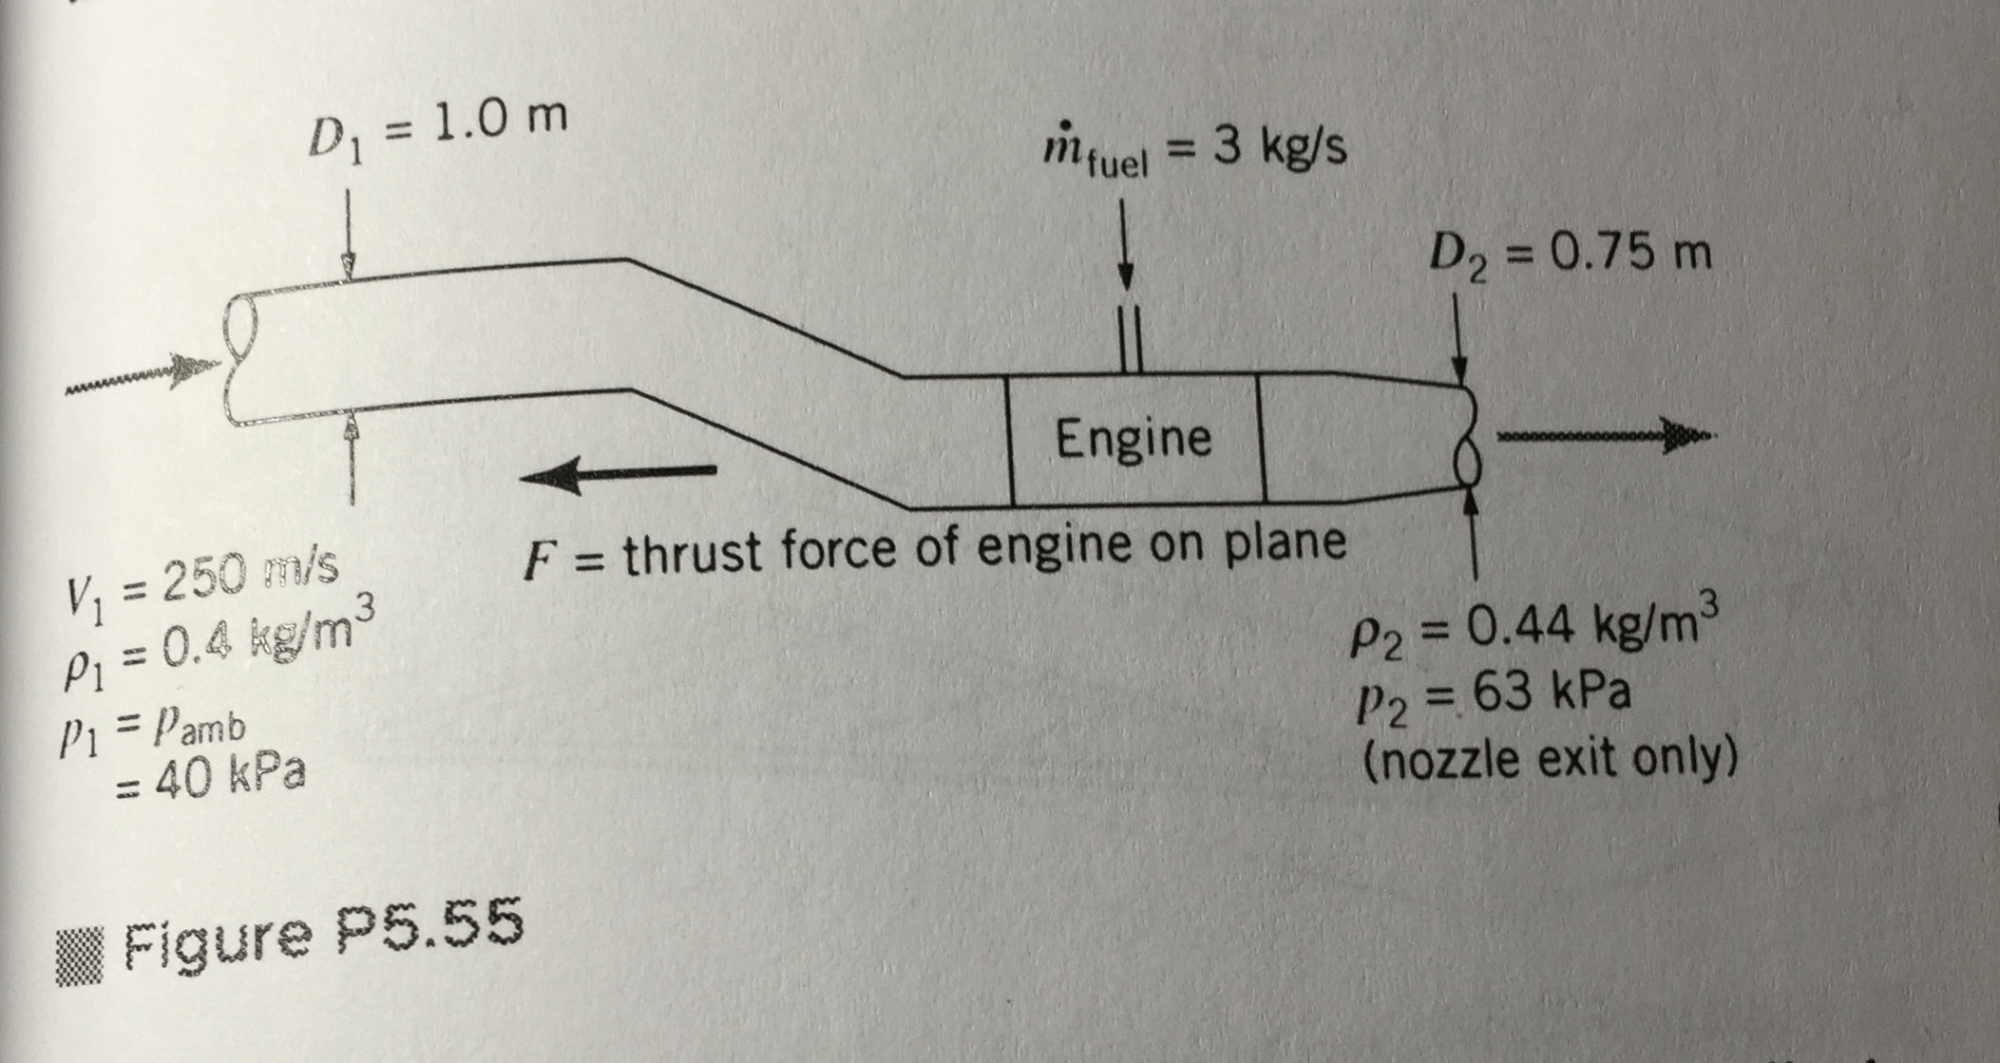 hight resolution of d1 1 0 m in fuel 3 kg s fuel 3k ds 0 75